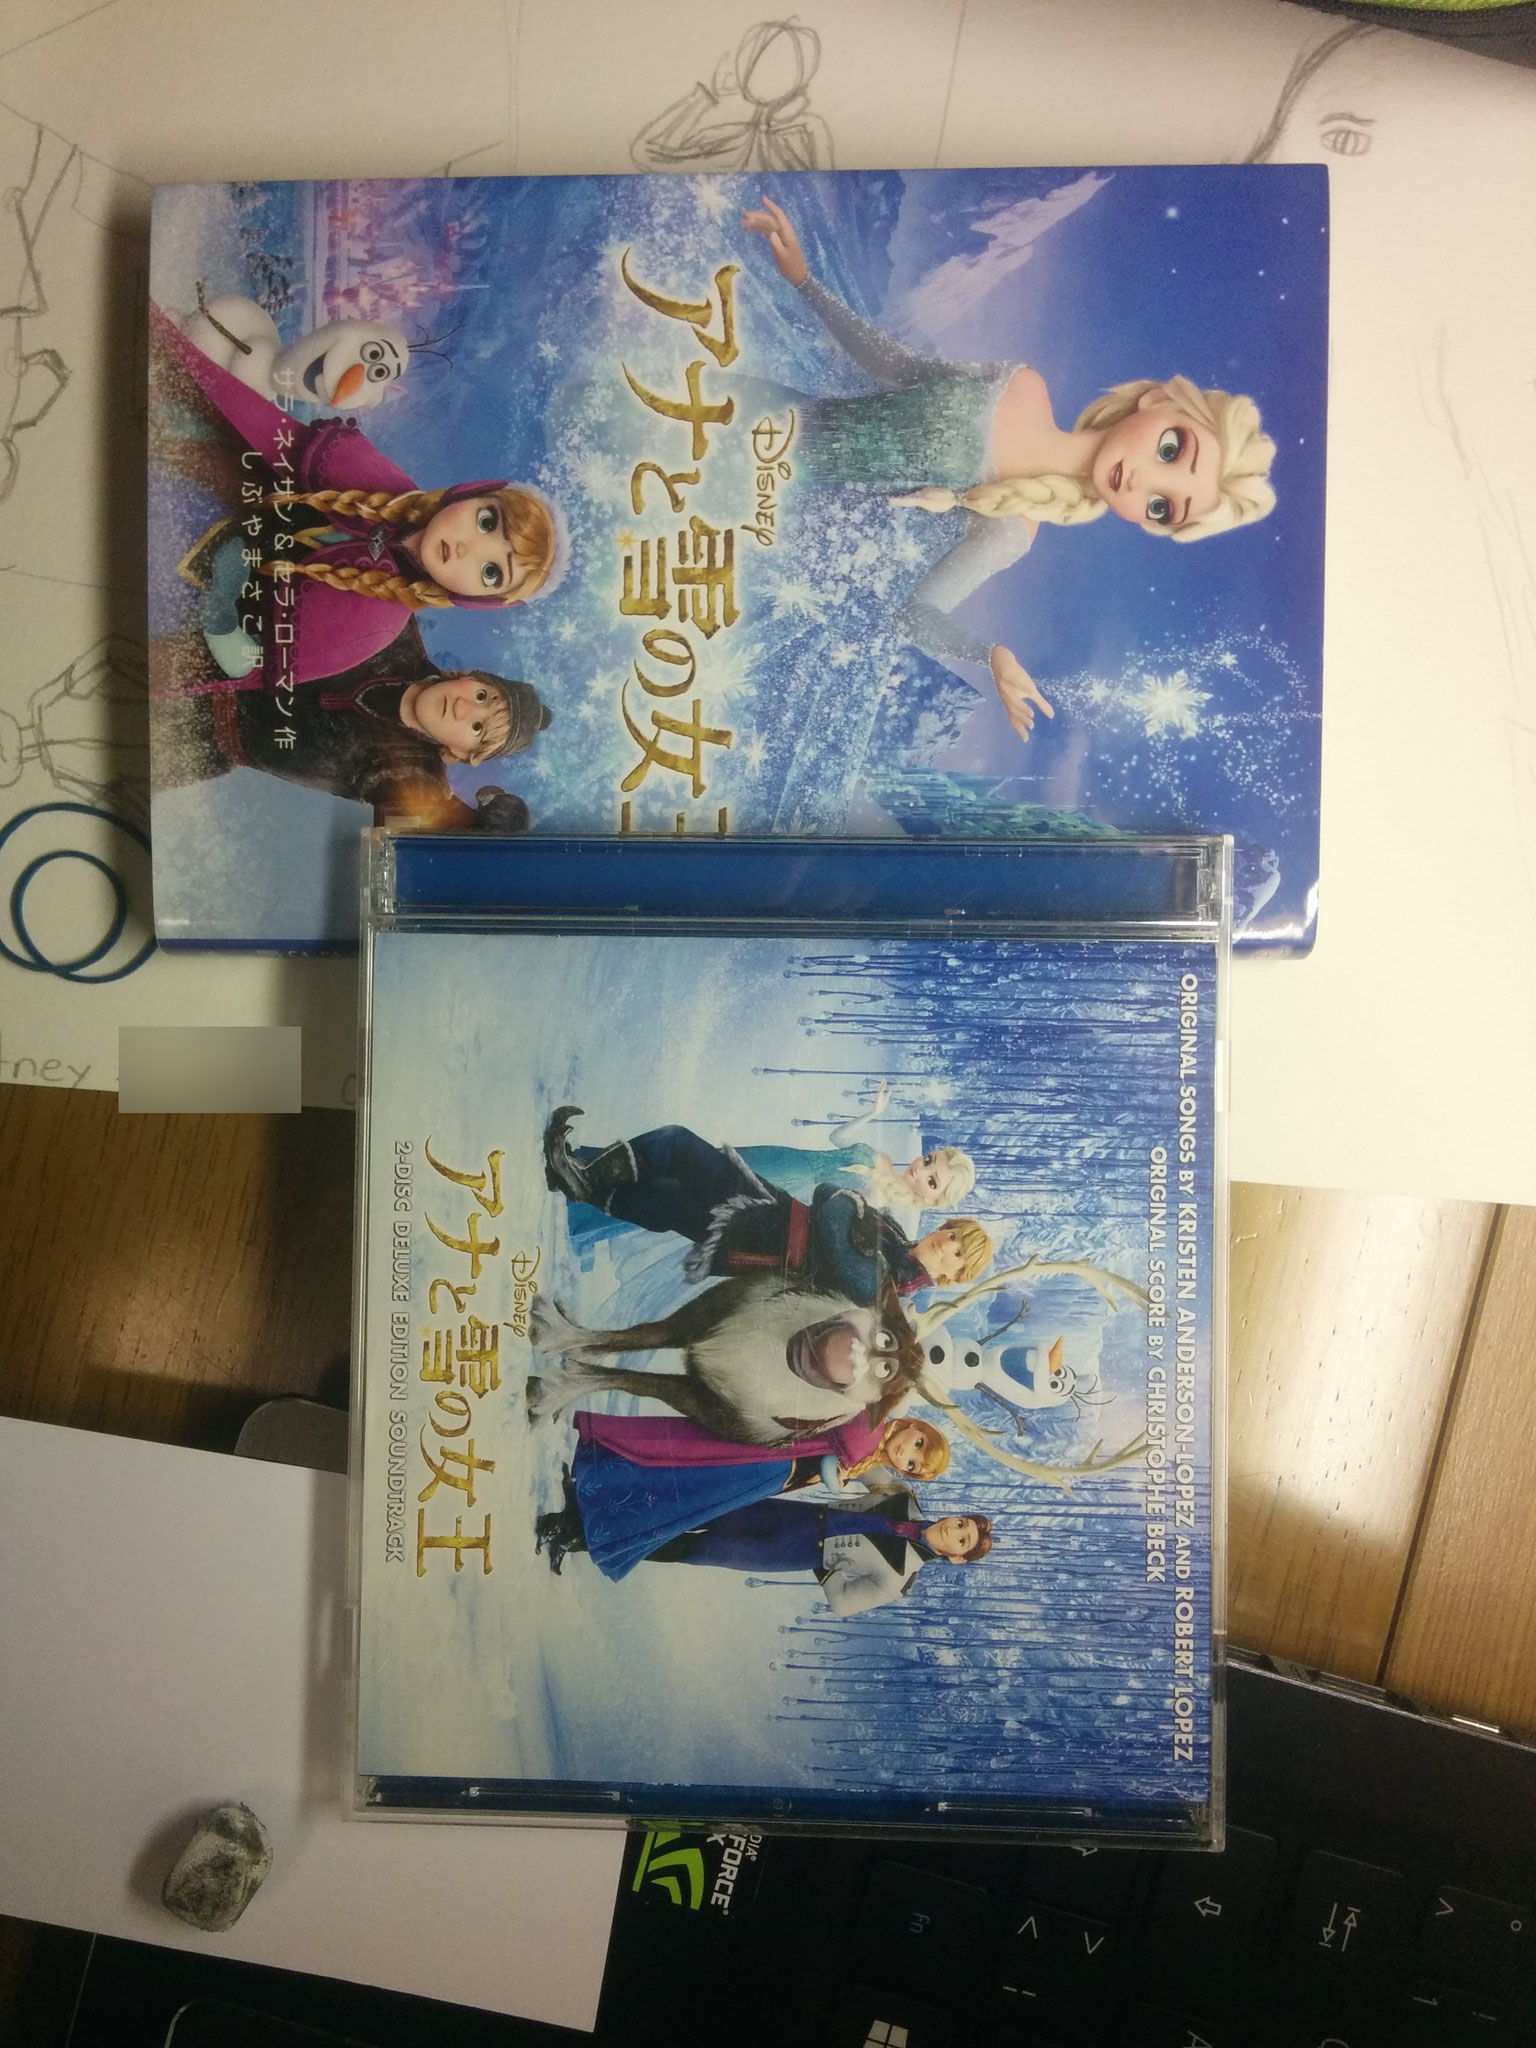 24 Gifts from my hostmum - I love Frozen! (THANK YOU!!)